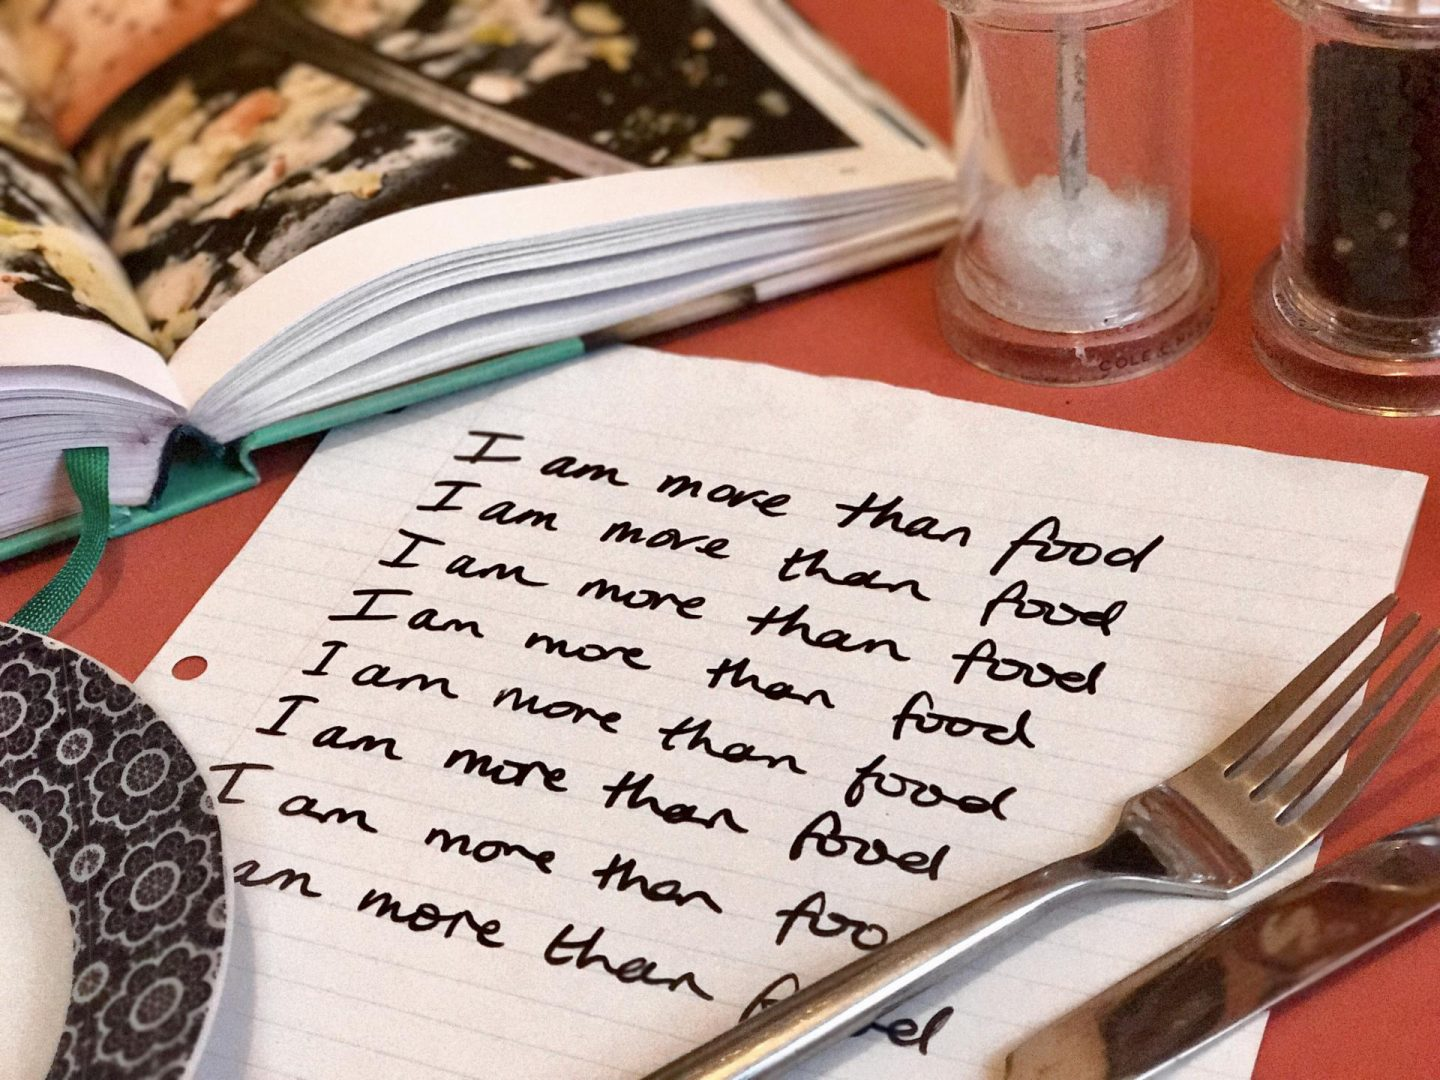 I Am More Than Food: My New Mantra